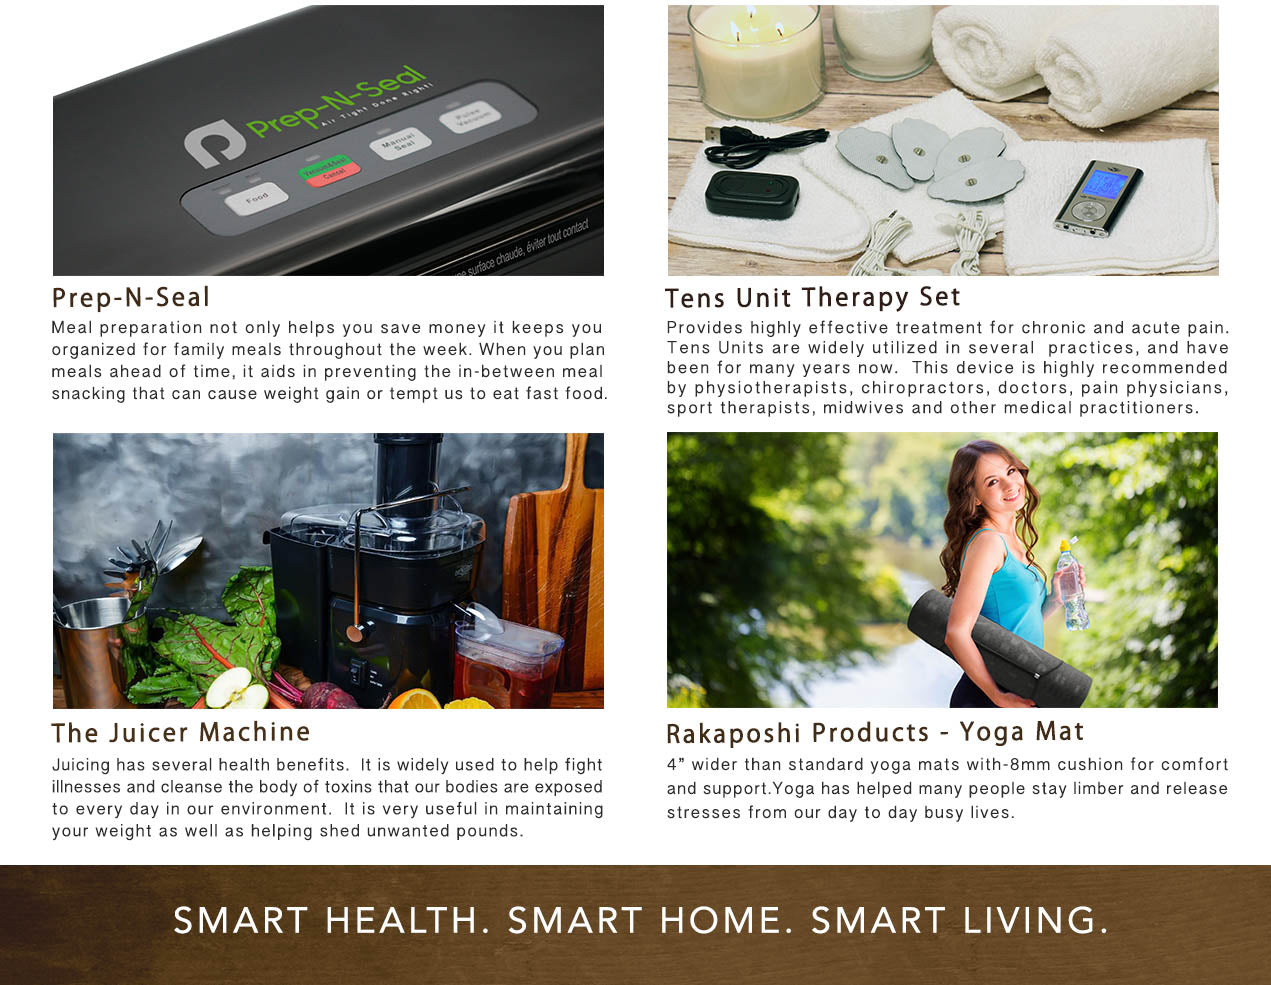 Healthy home products Smart living smart home